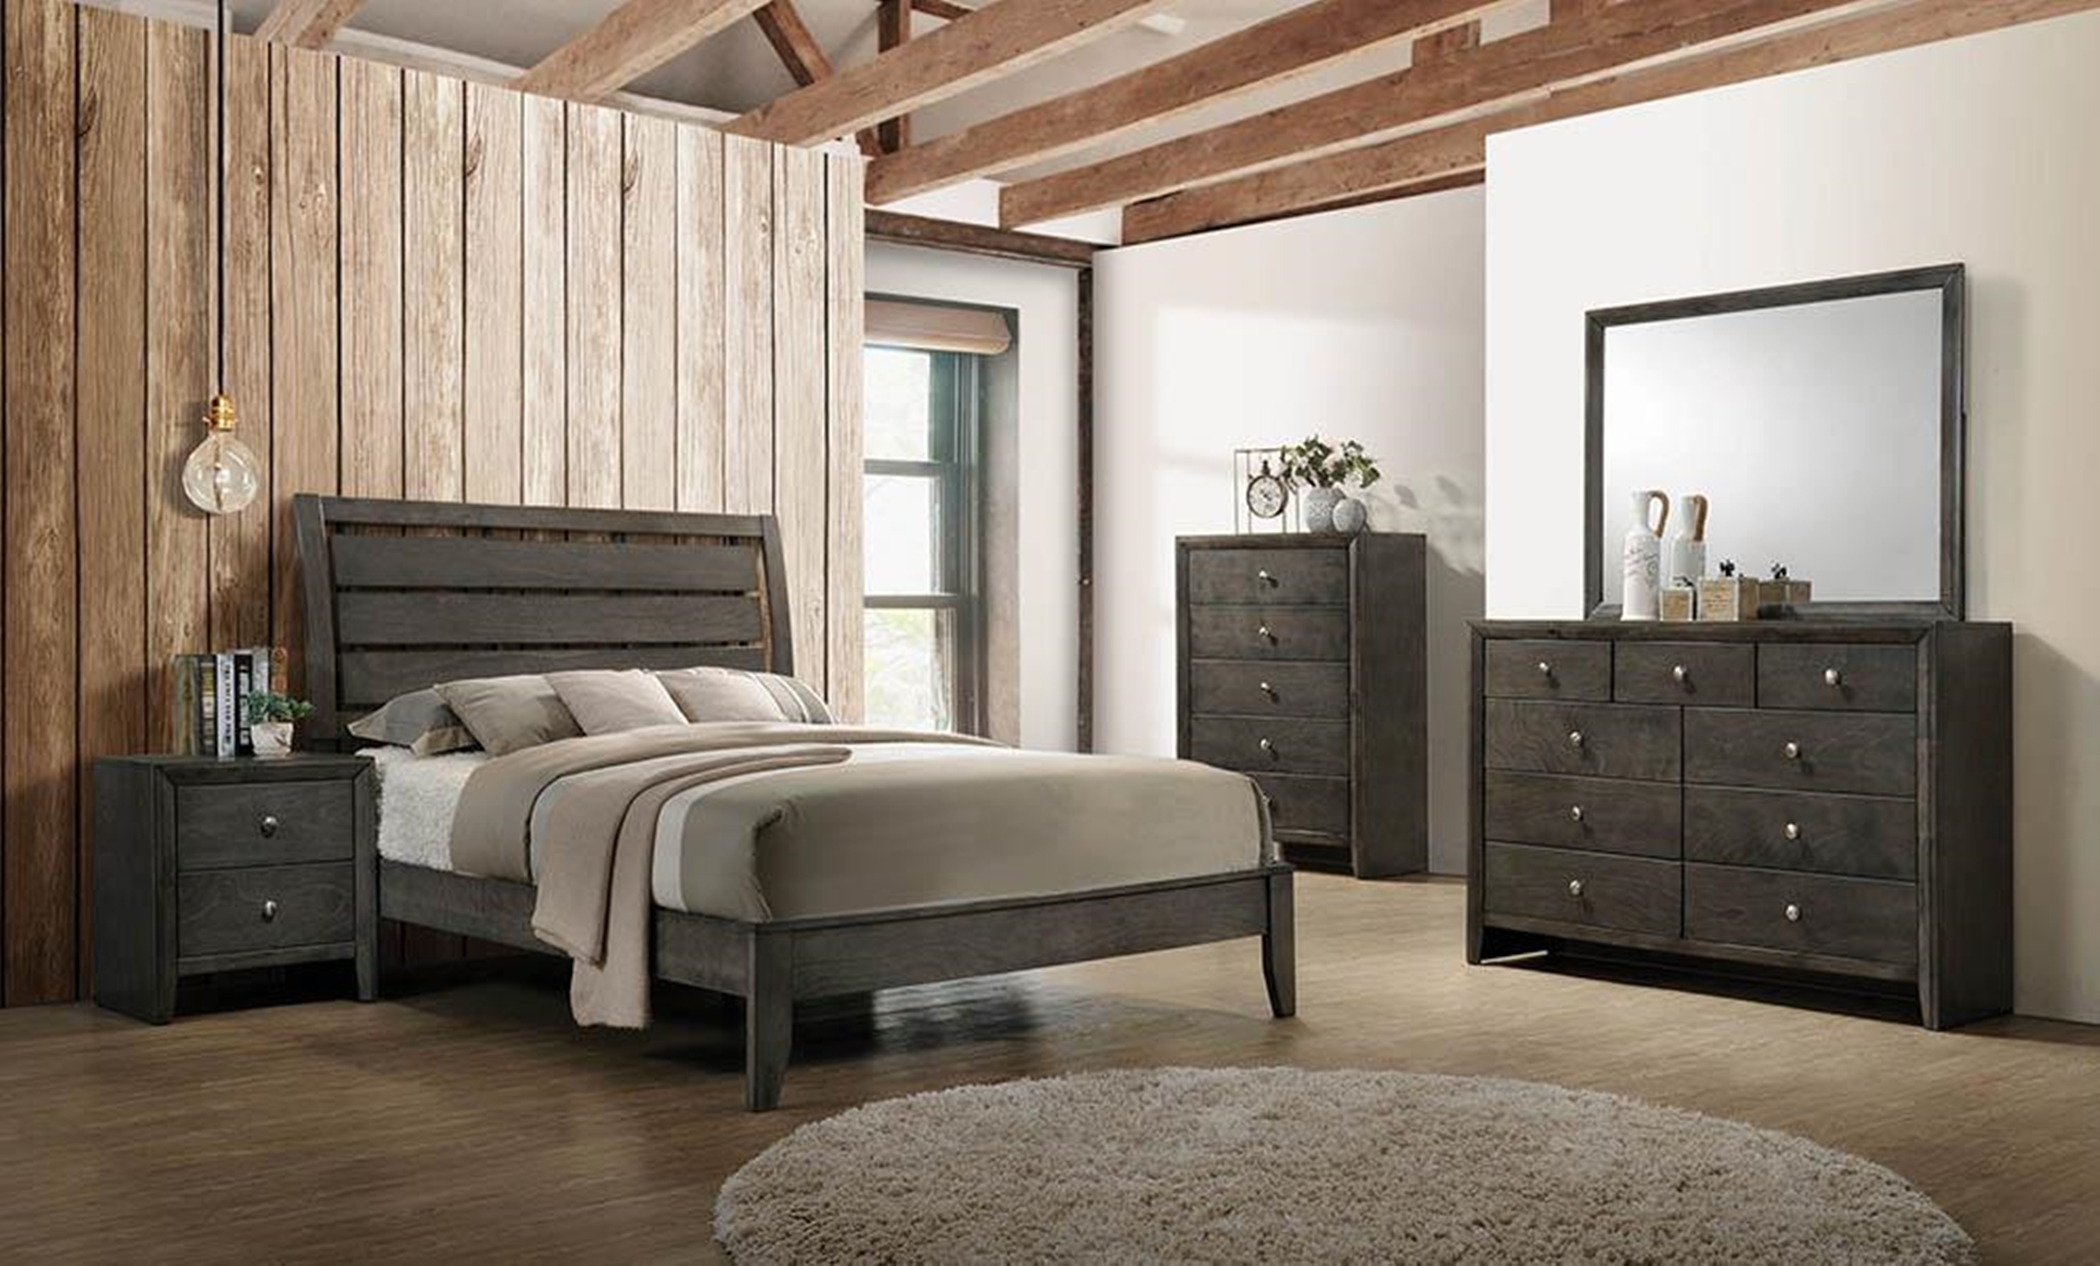 215841KW - C King Bed